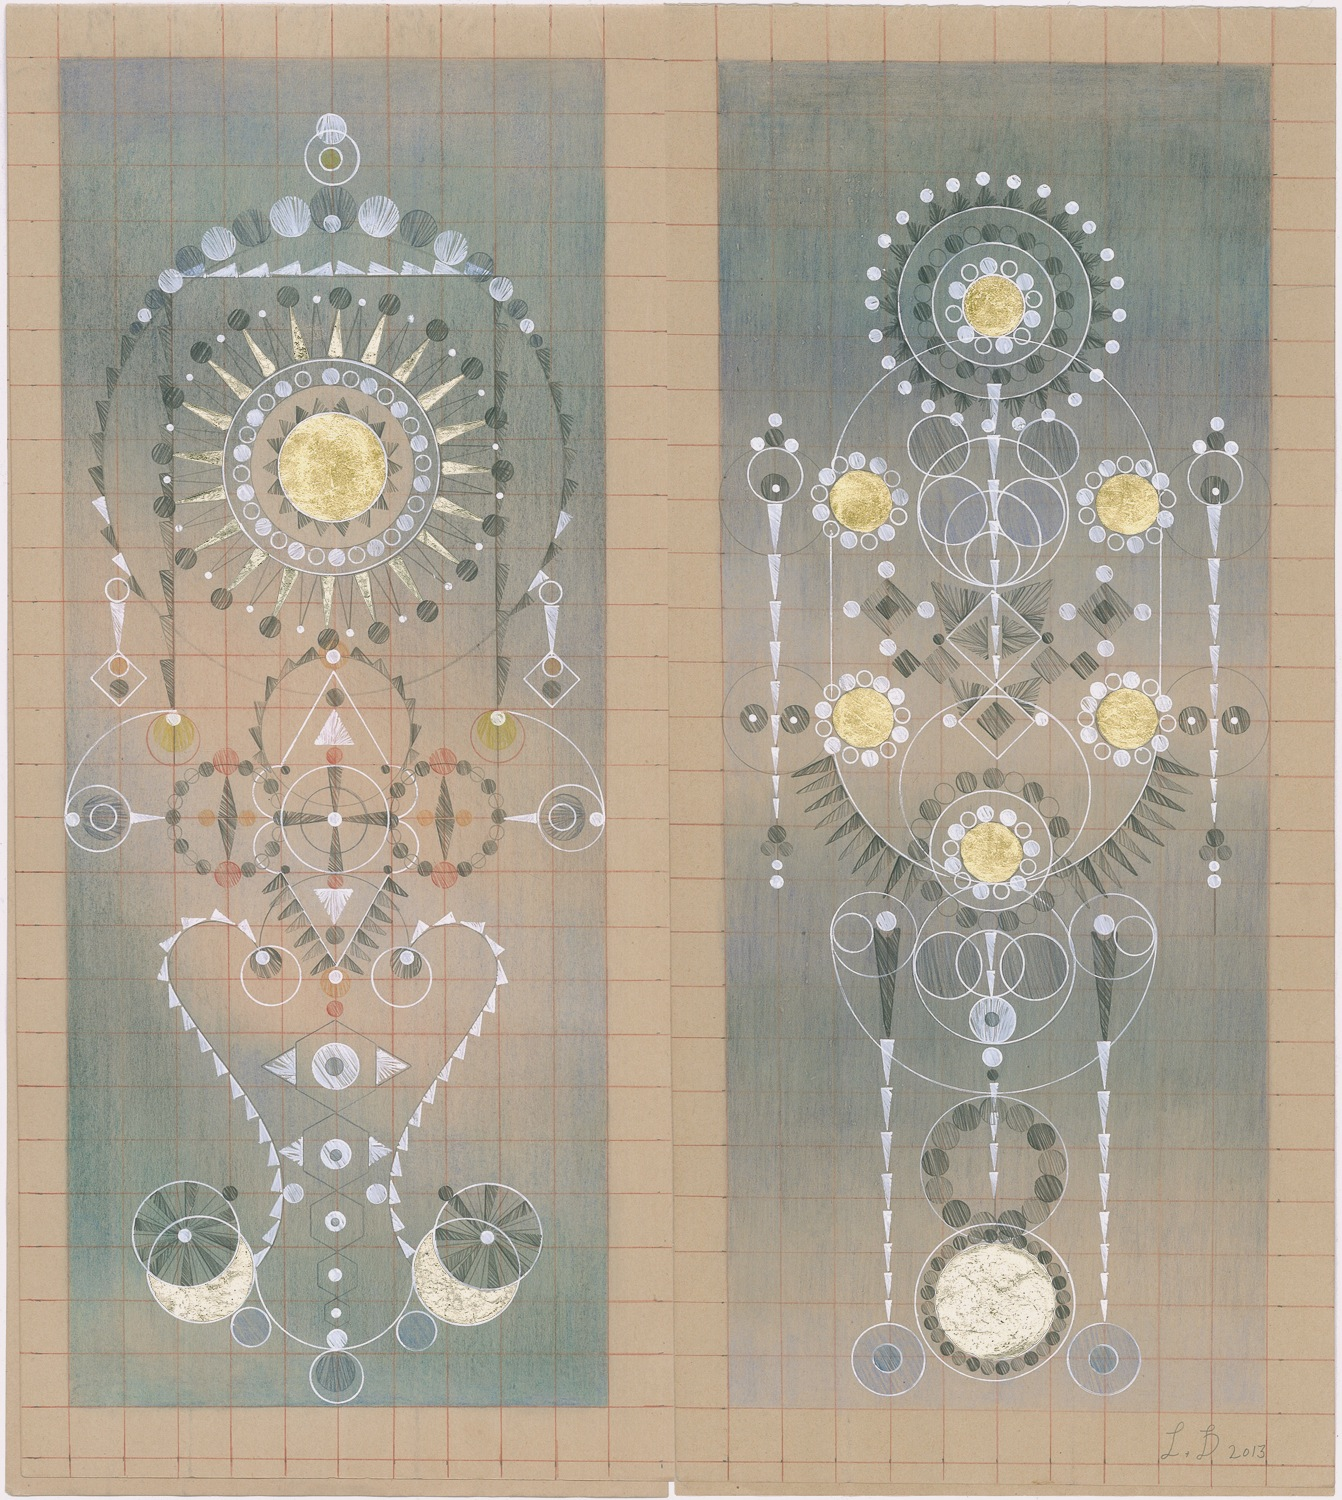 Constellation Symptom No. 16,Colored Pencil,Graphite, Gold Leaf on Antique Ledger Book Pages.13.5 x 12.25 inches